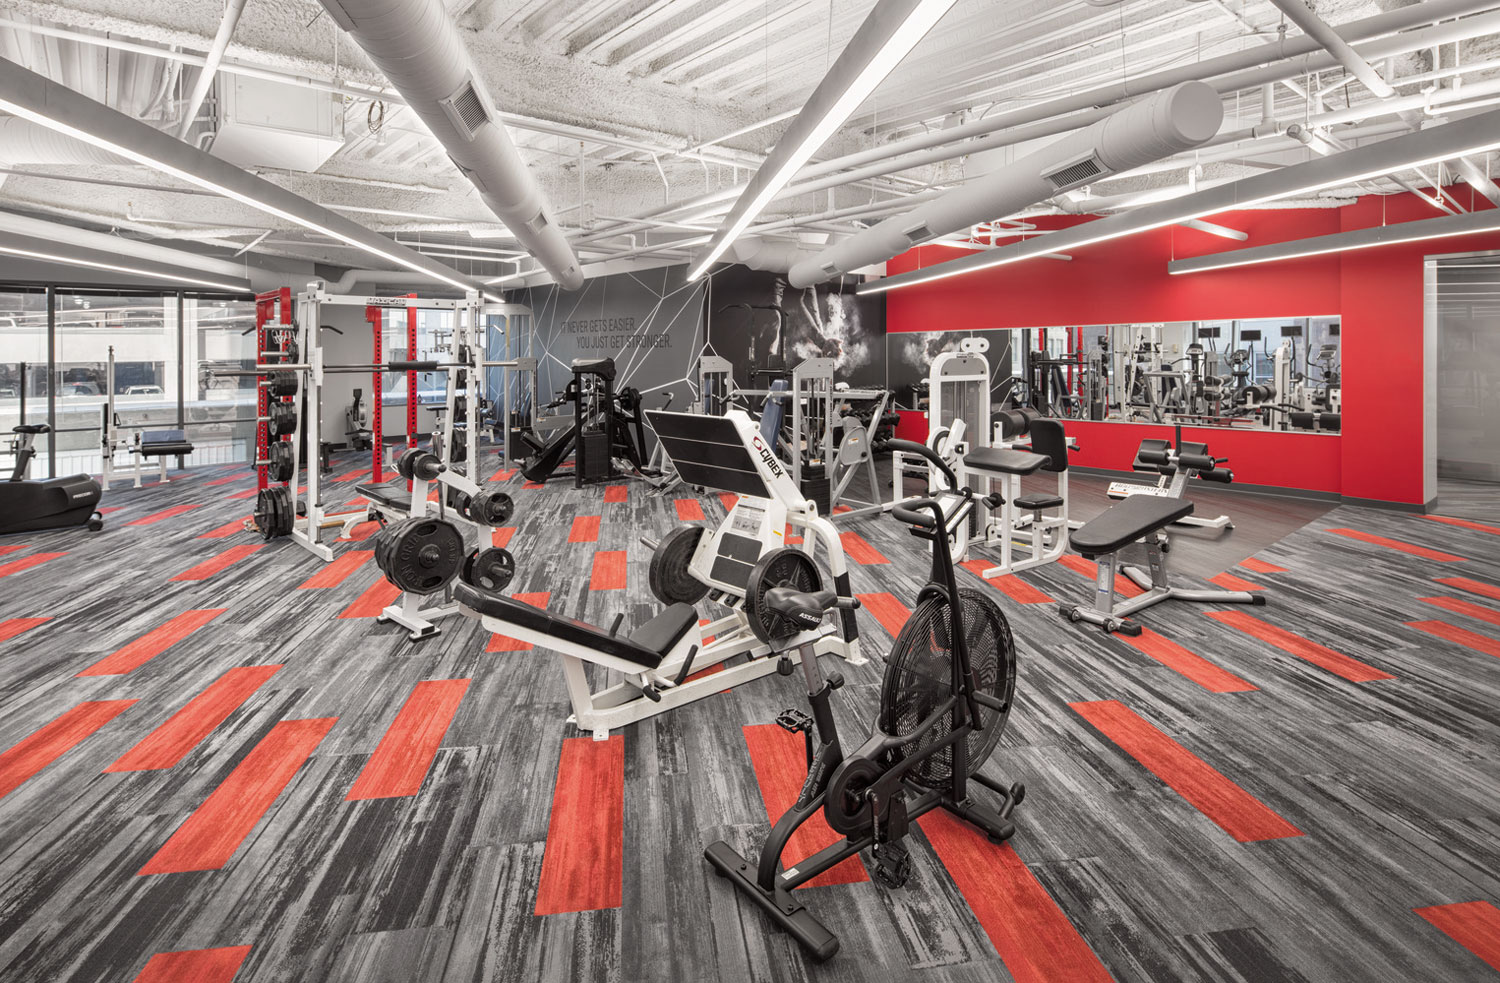 Get in a power work out in the newly expanded fitness center